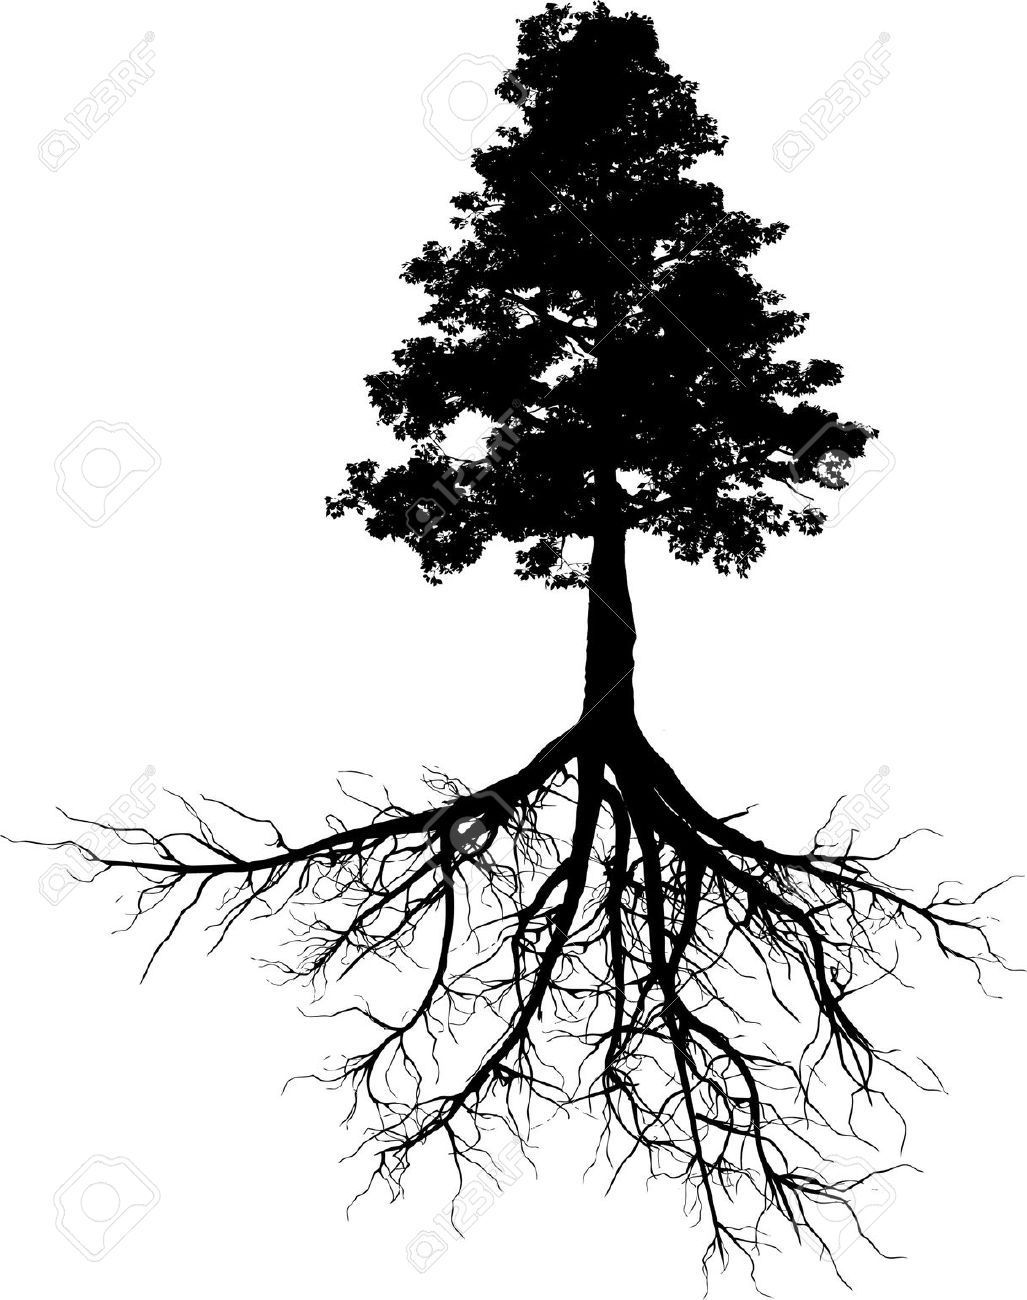 Tree Outline With Roots Google Search Tattoo Tatuaje Arbol